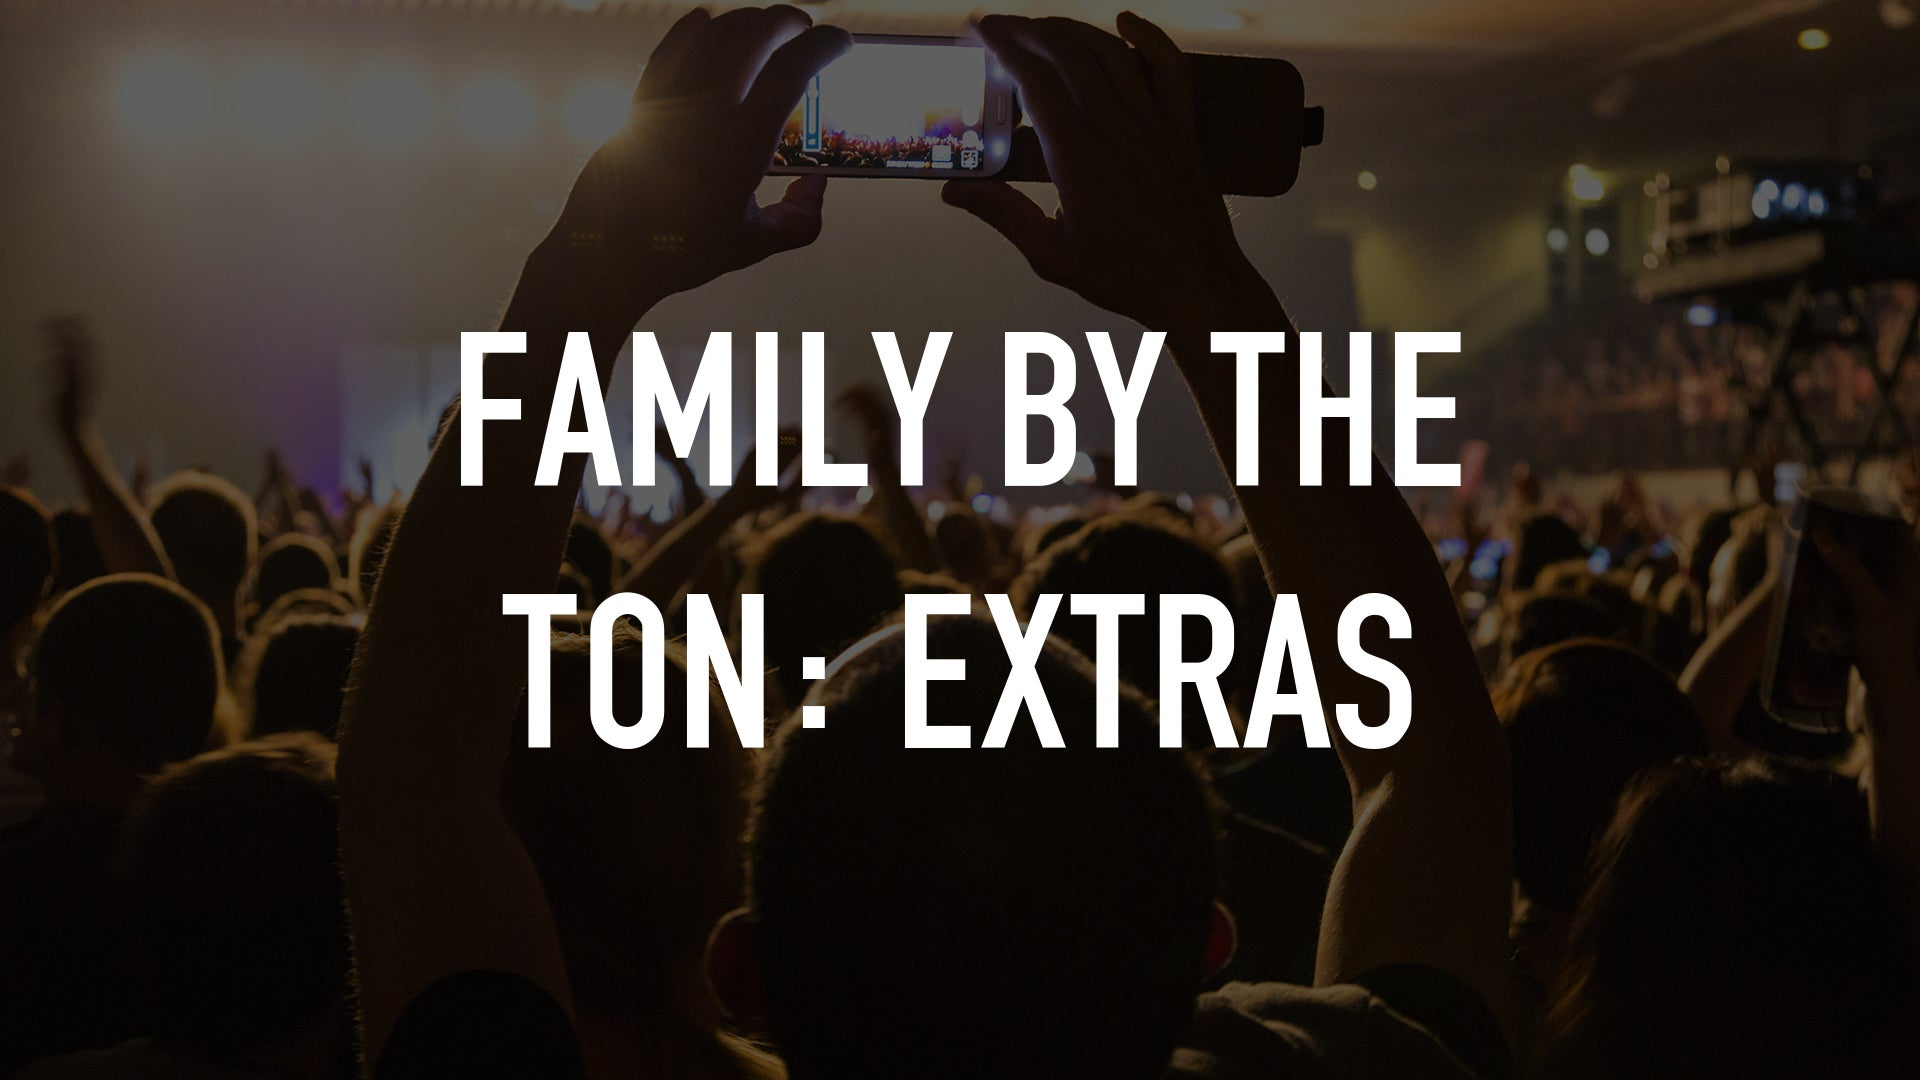 Family by the Ton: Extras